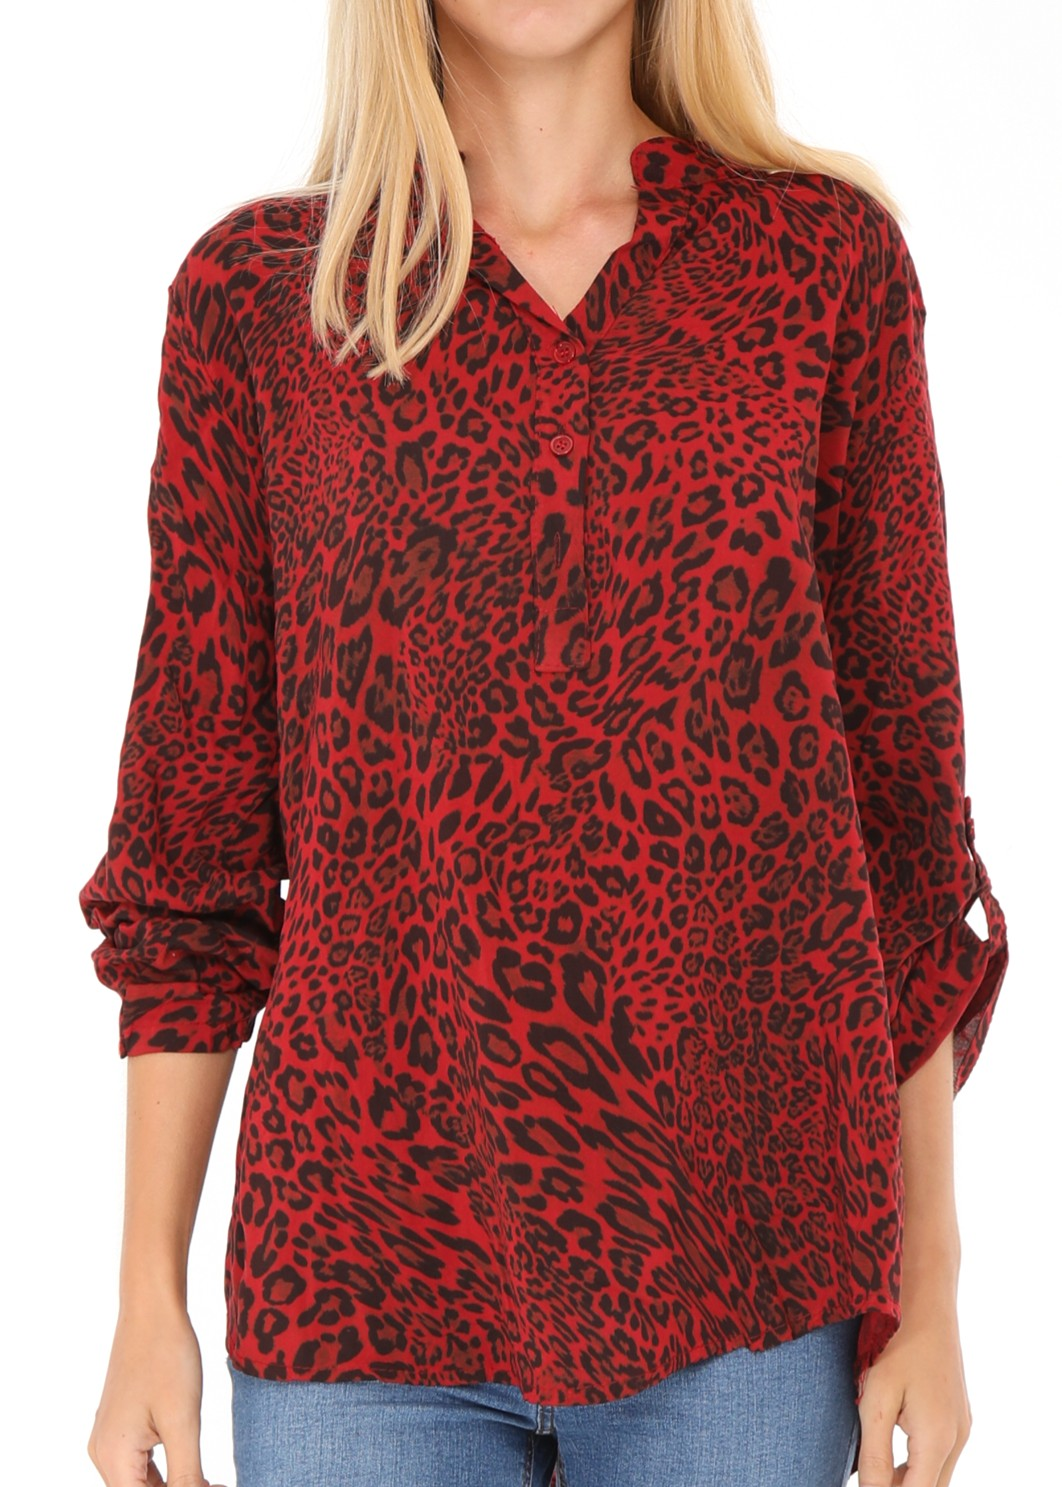 JOLIE  - Animal Print Shirt - Red